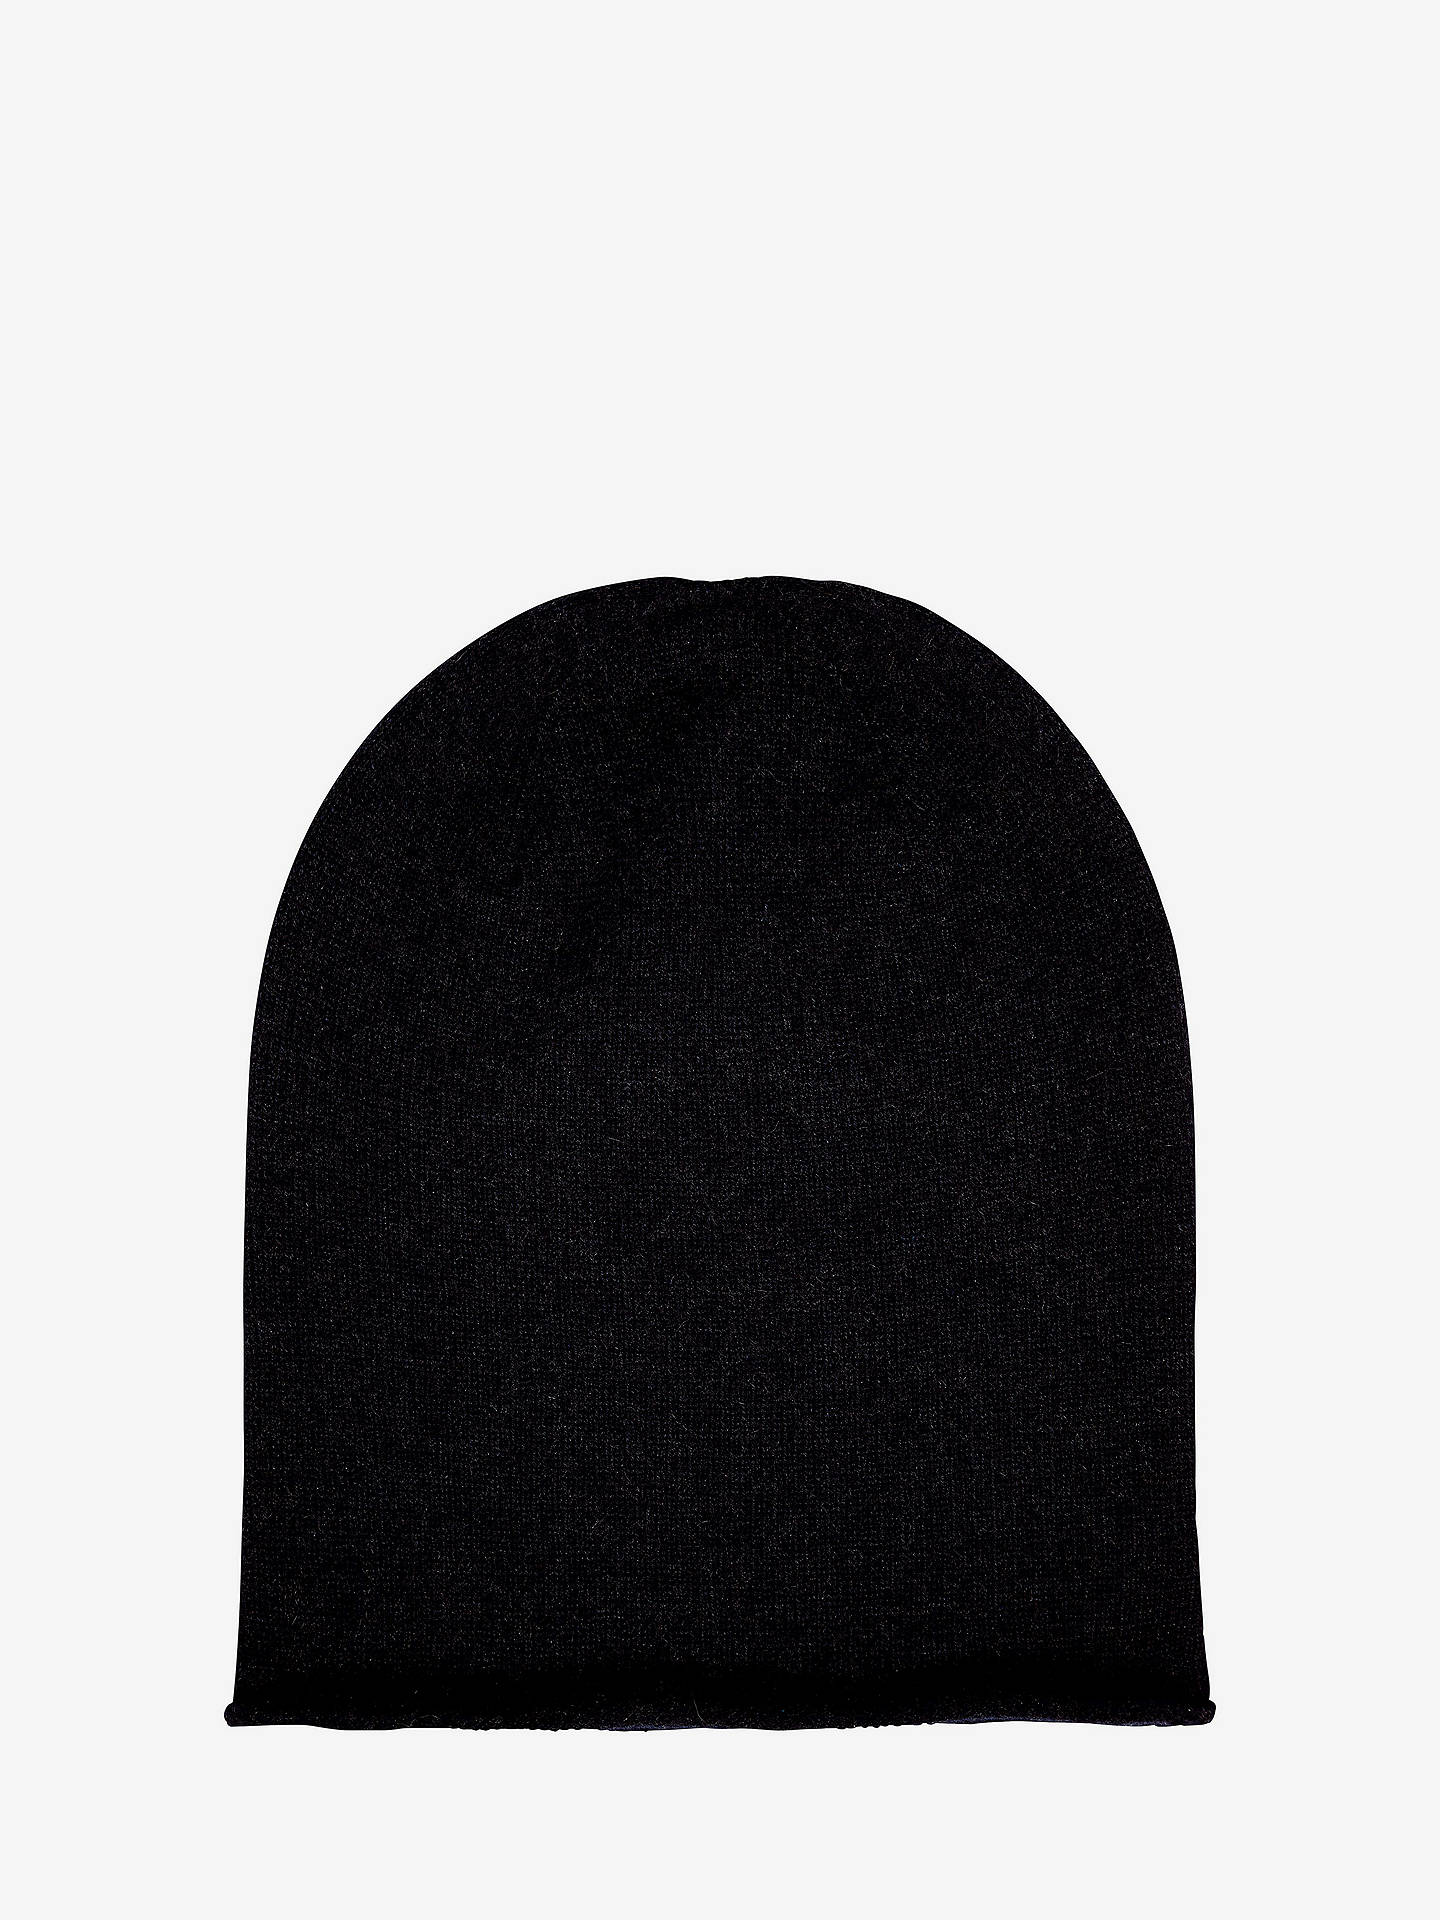 BuyBrora Cashmere Beanie, One Size, Black Online at johnlewis.com